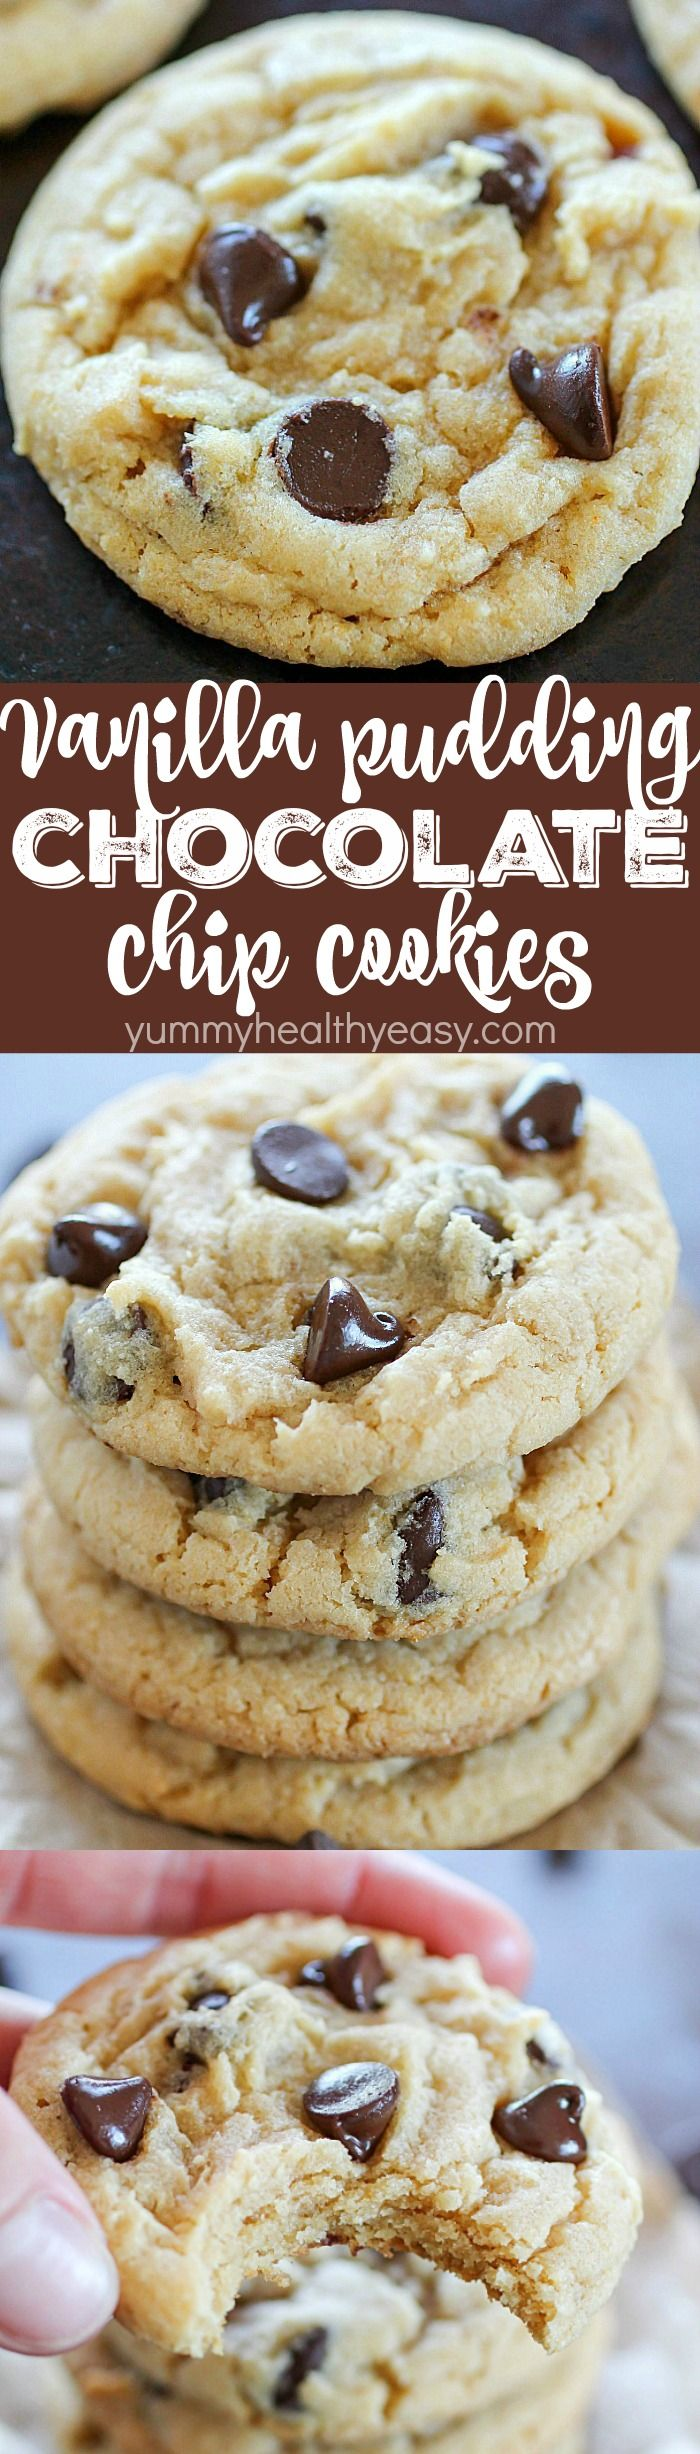 These Vanilla Pudding Chocolate Chip Cookies Have Vanilla Pudding Mixed Inside The Dough To Give Them